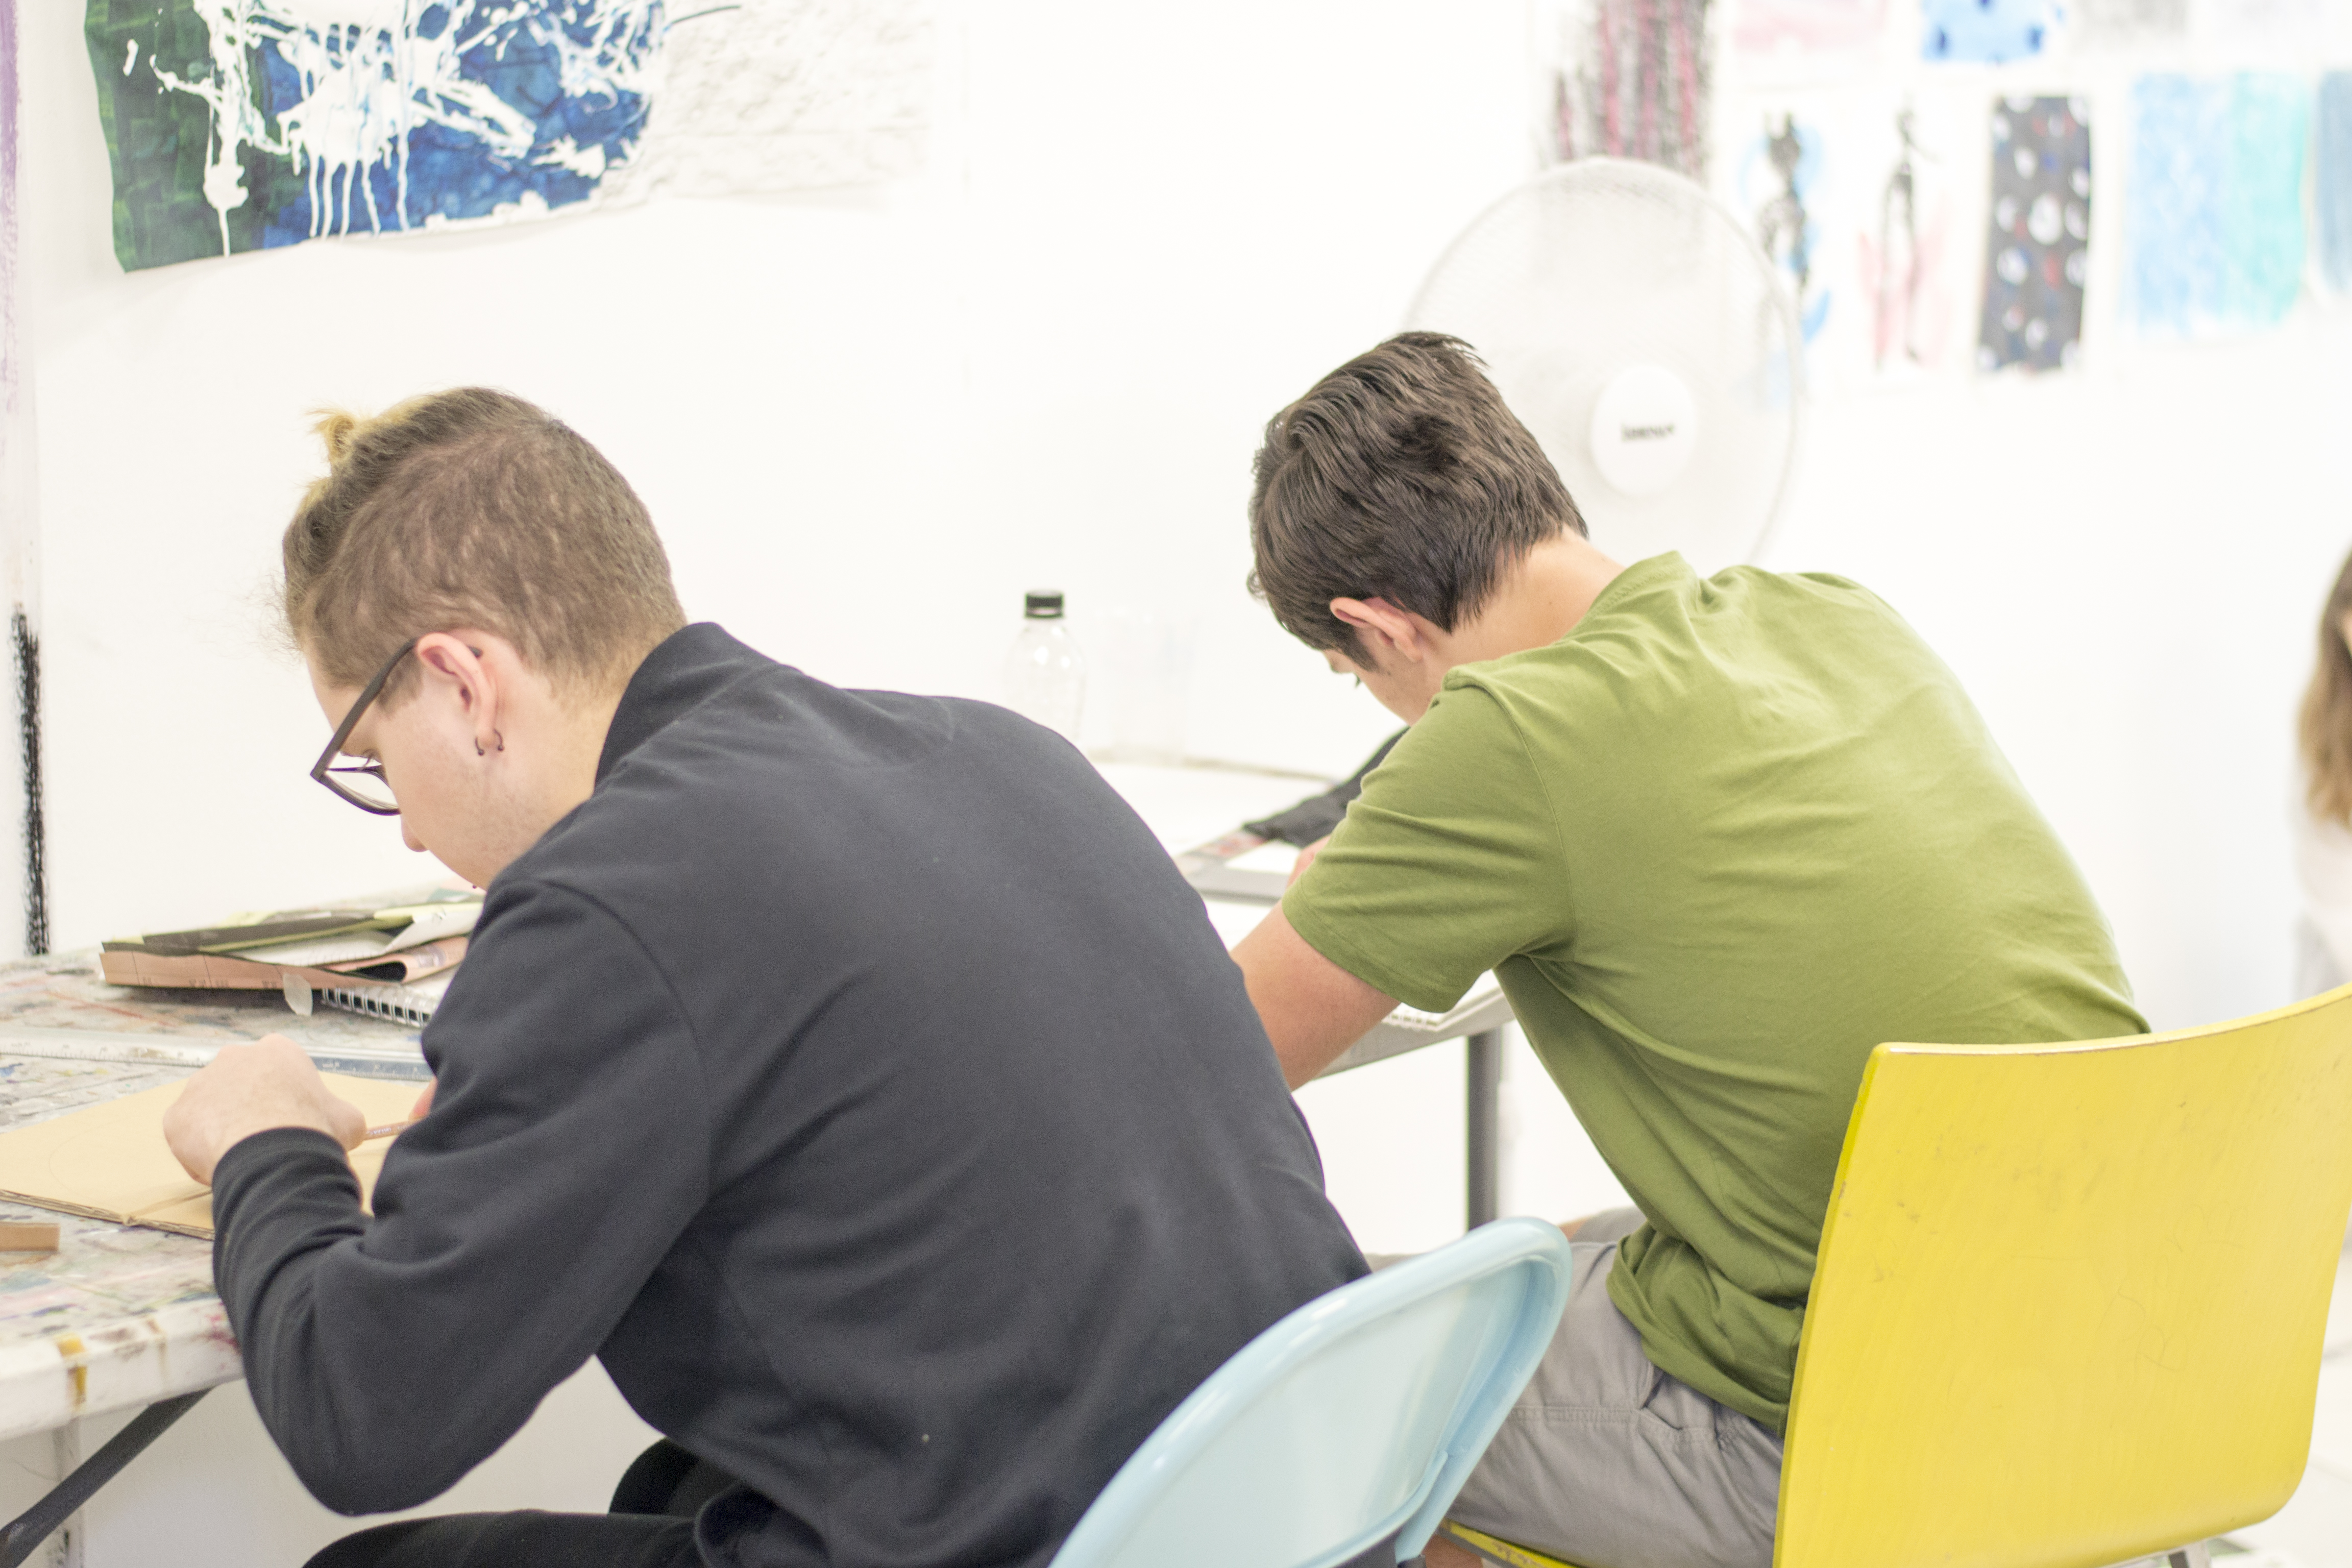 Pre-Foundation Portfolio Preparation at Camberwell for 16-18 Year Olds